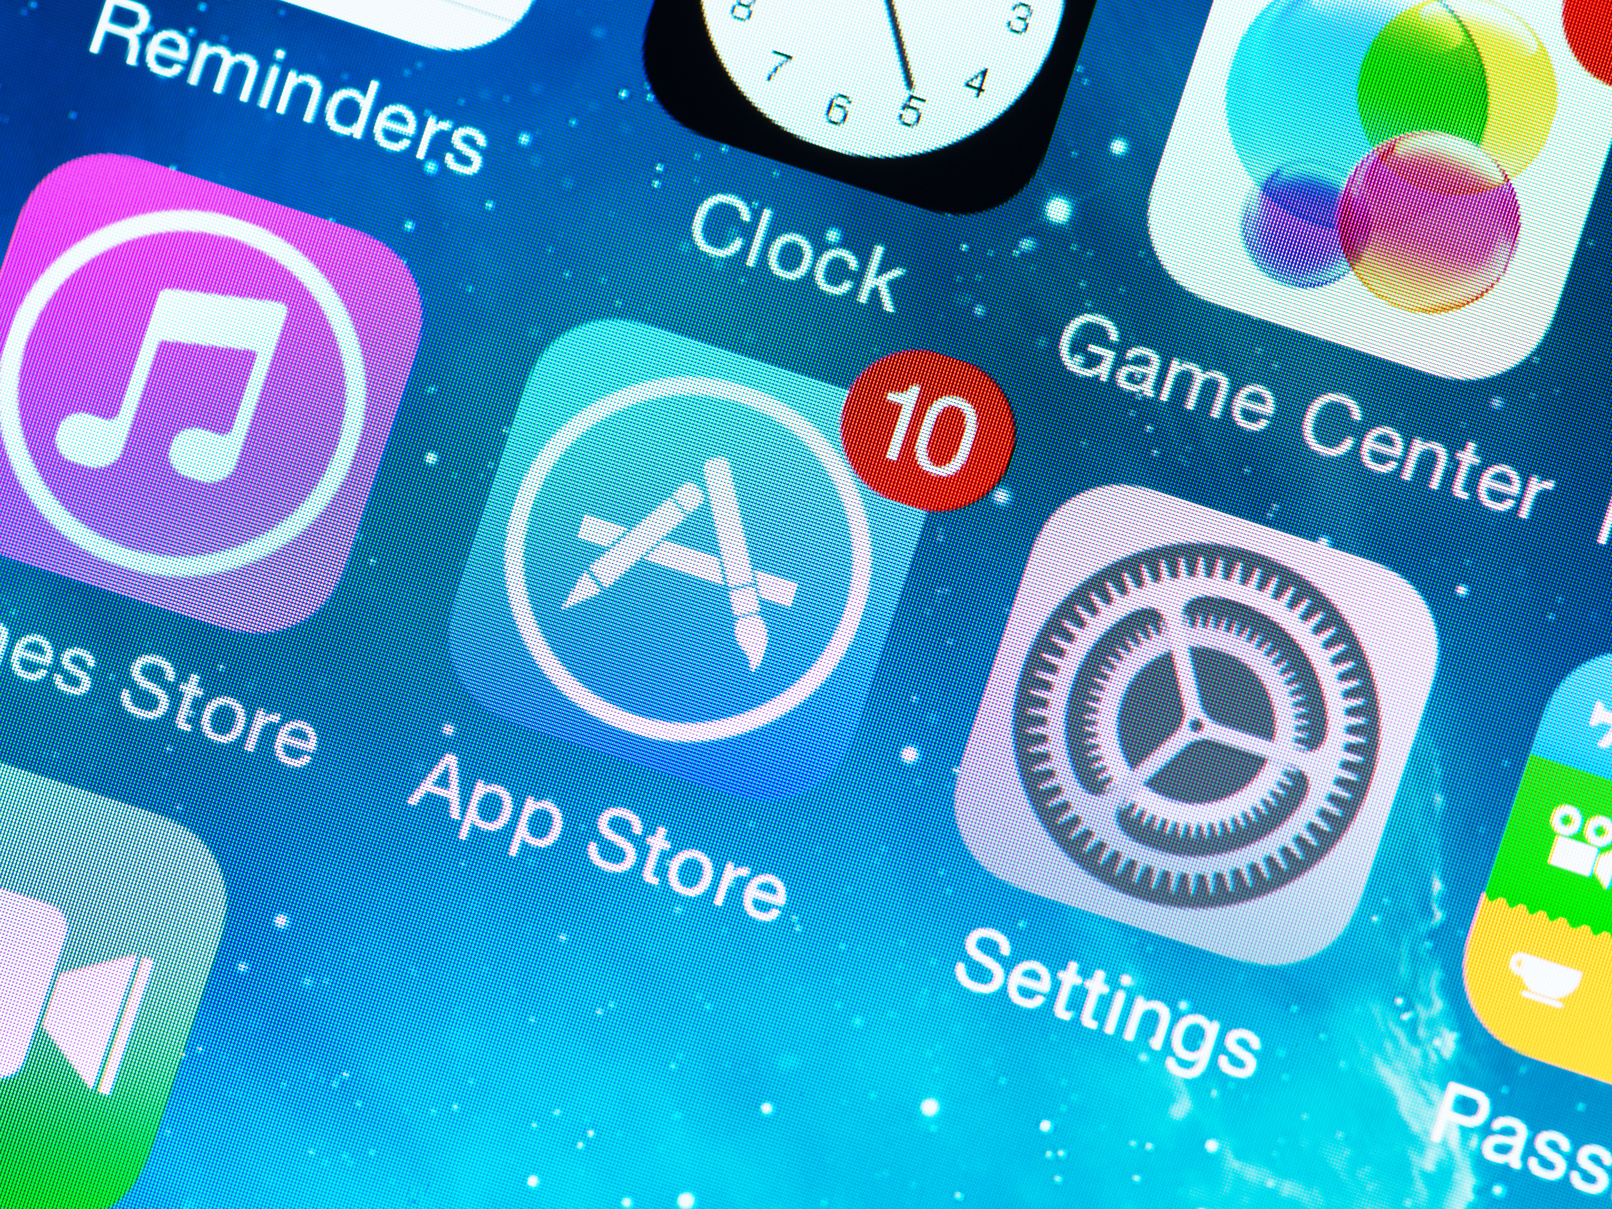 iPhone Users Argue for Their Right to Bring Suit Over Apple's App Store